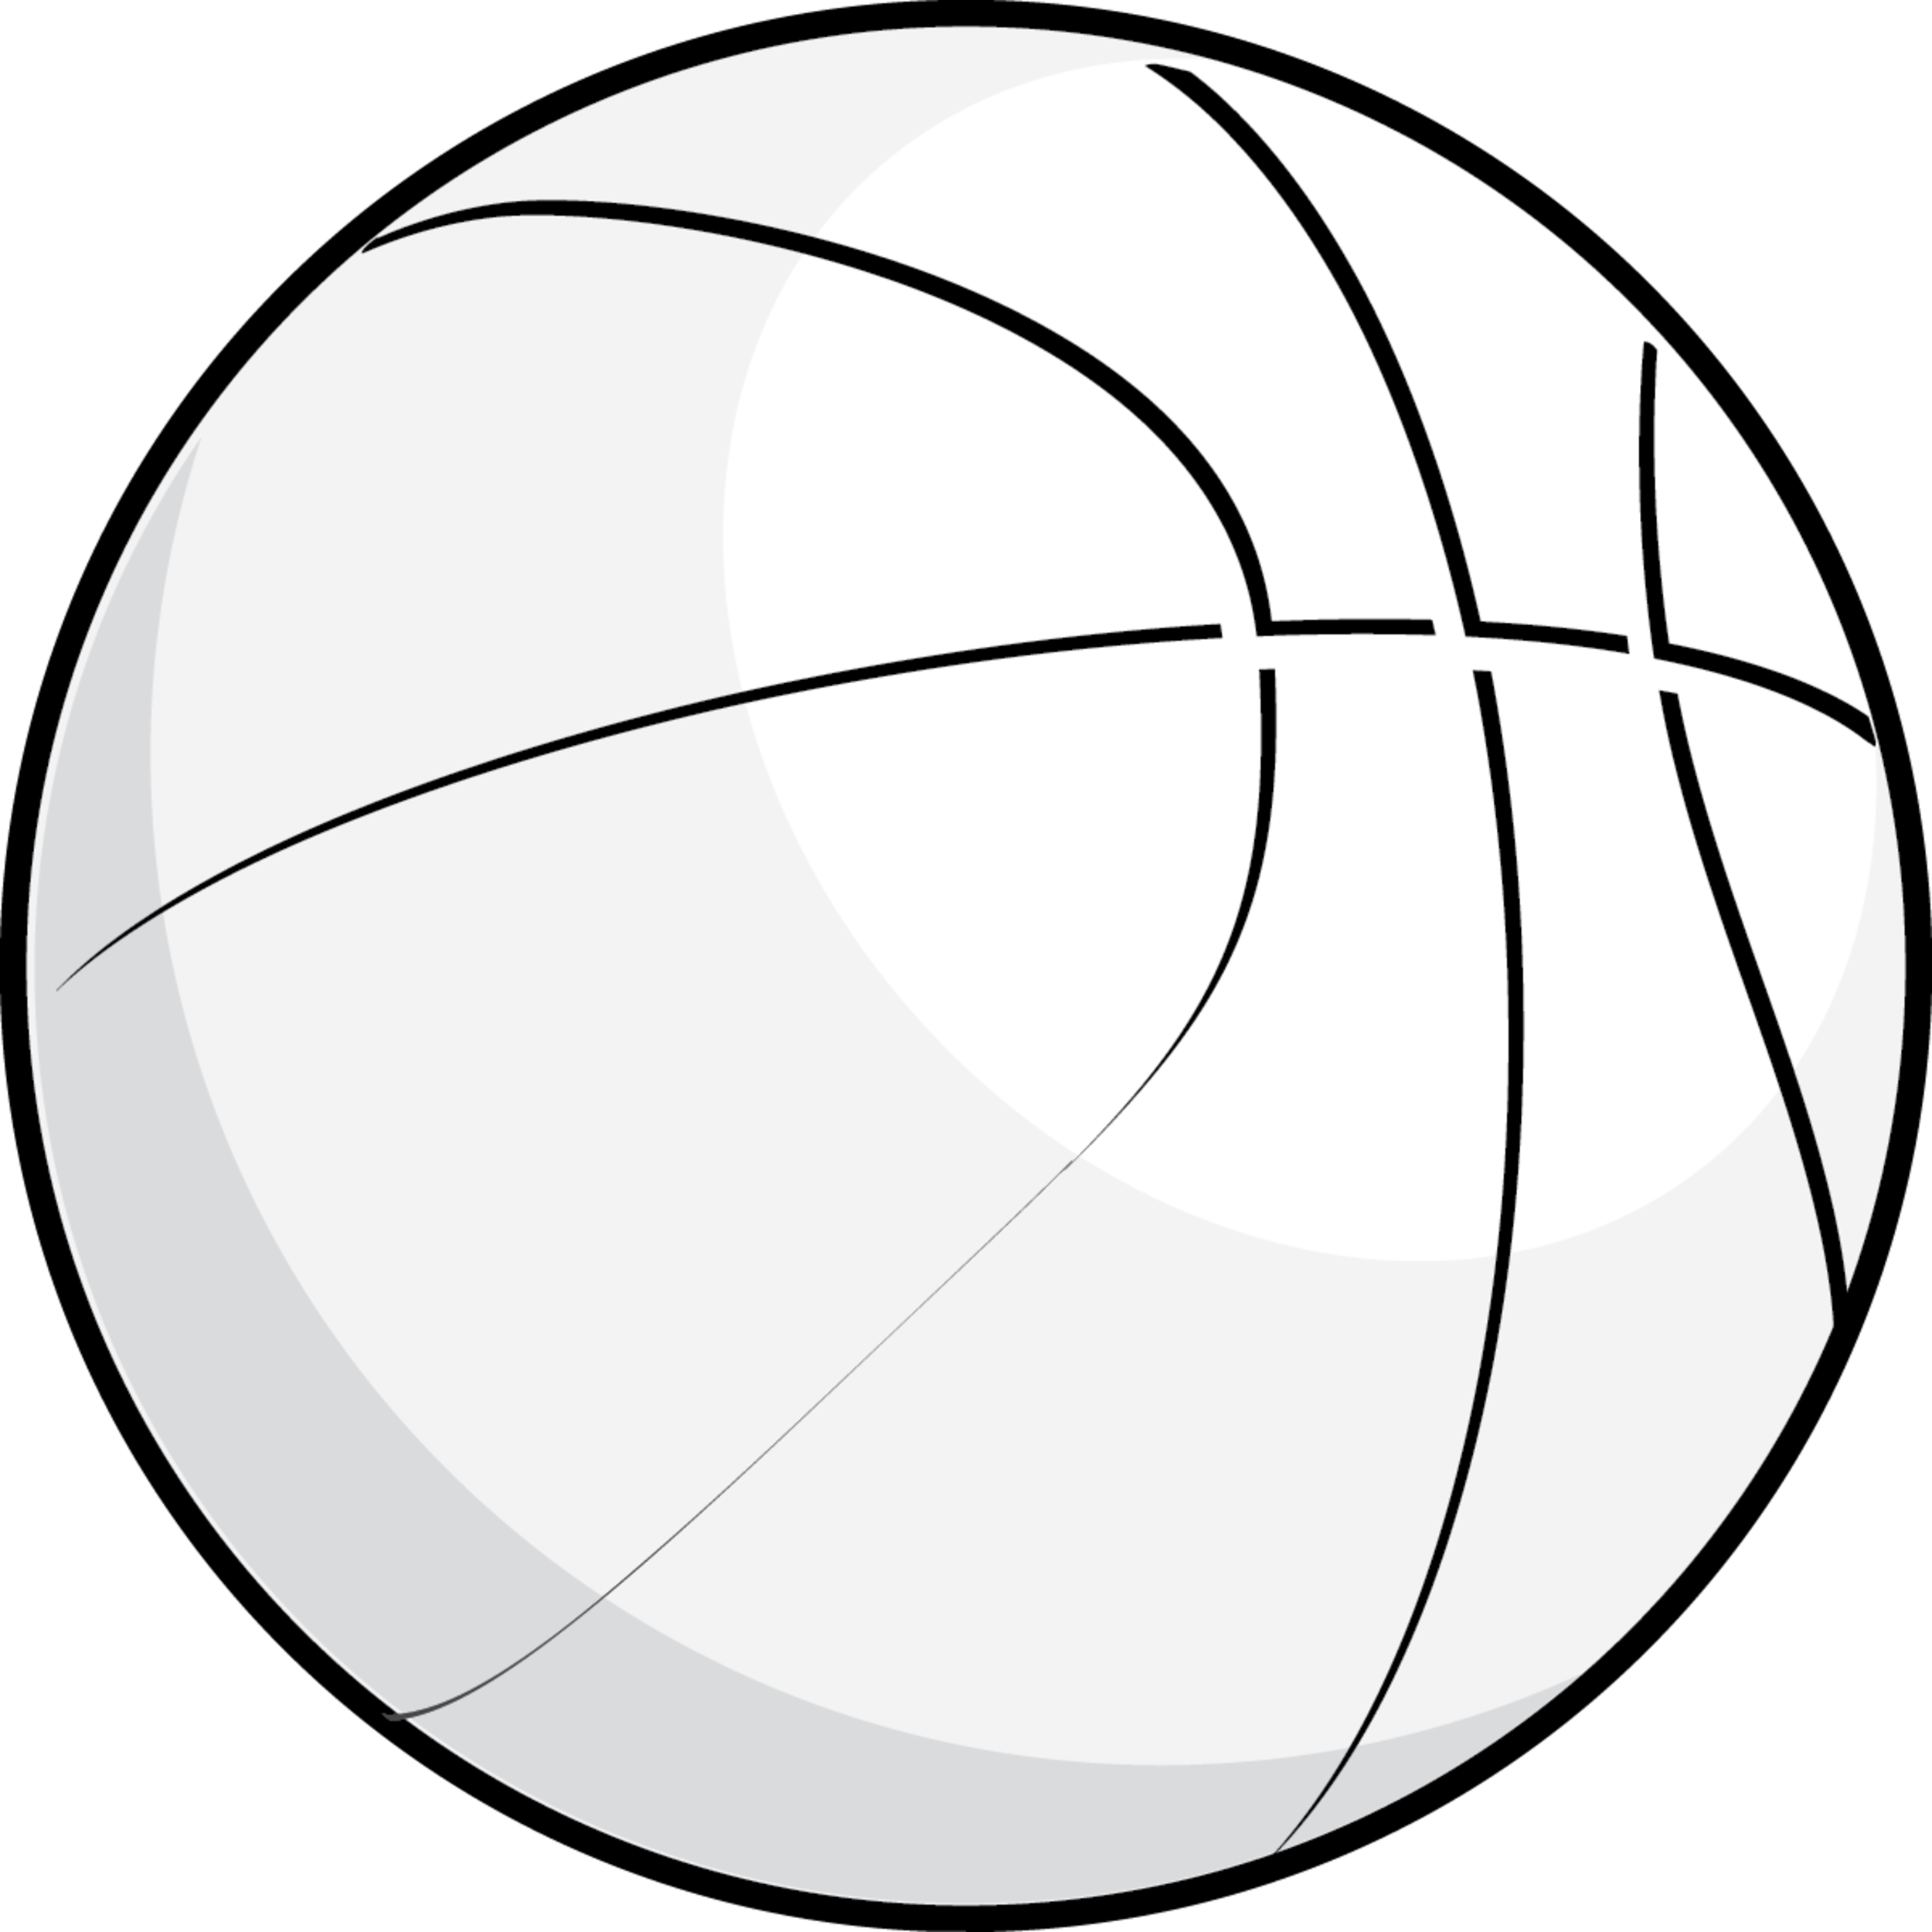 Basketball Outline Clipart